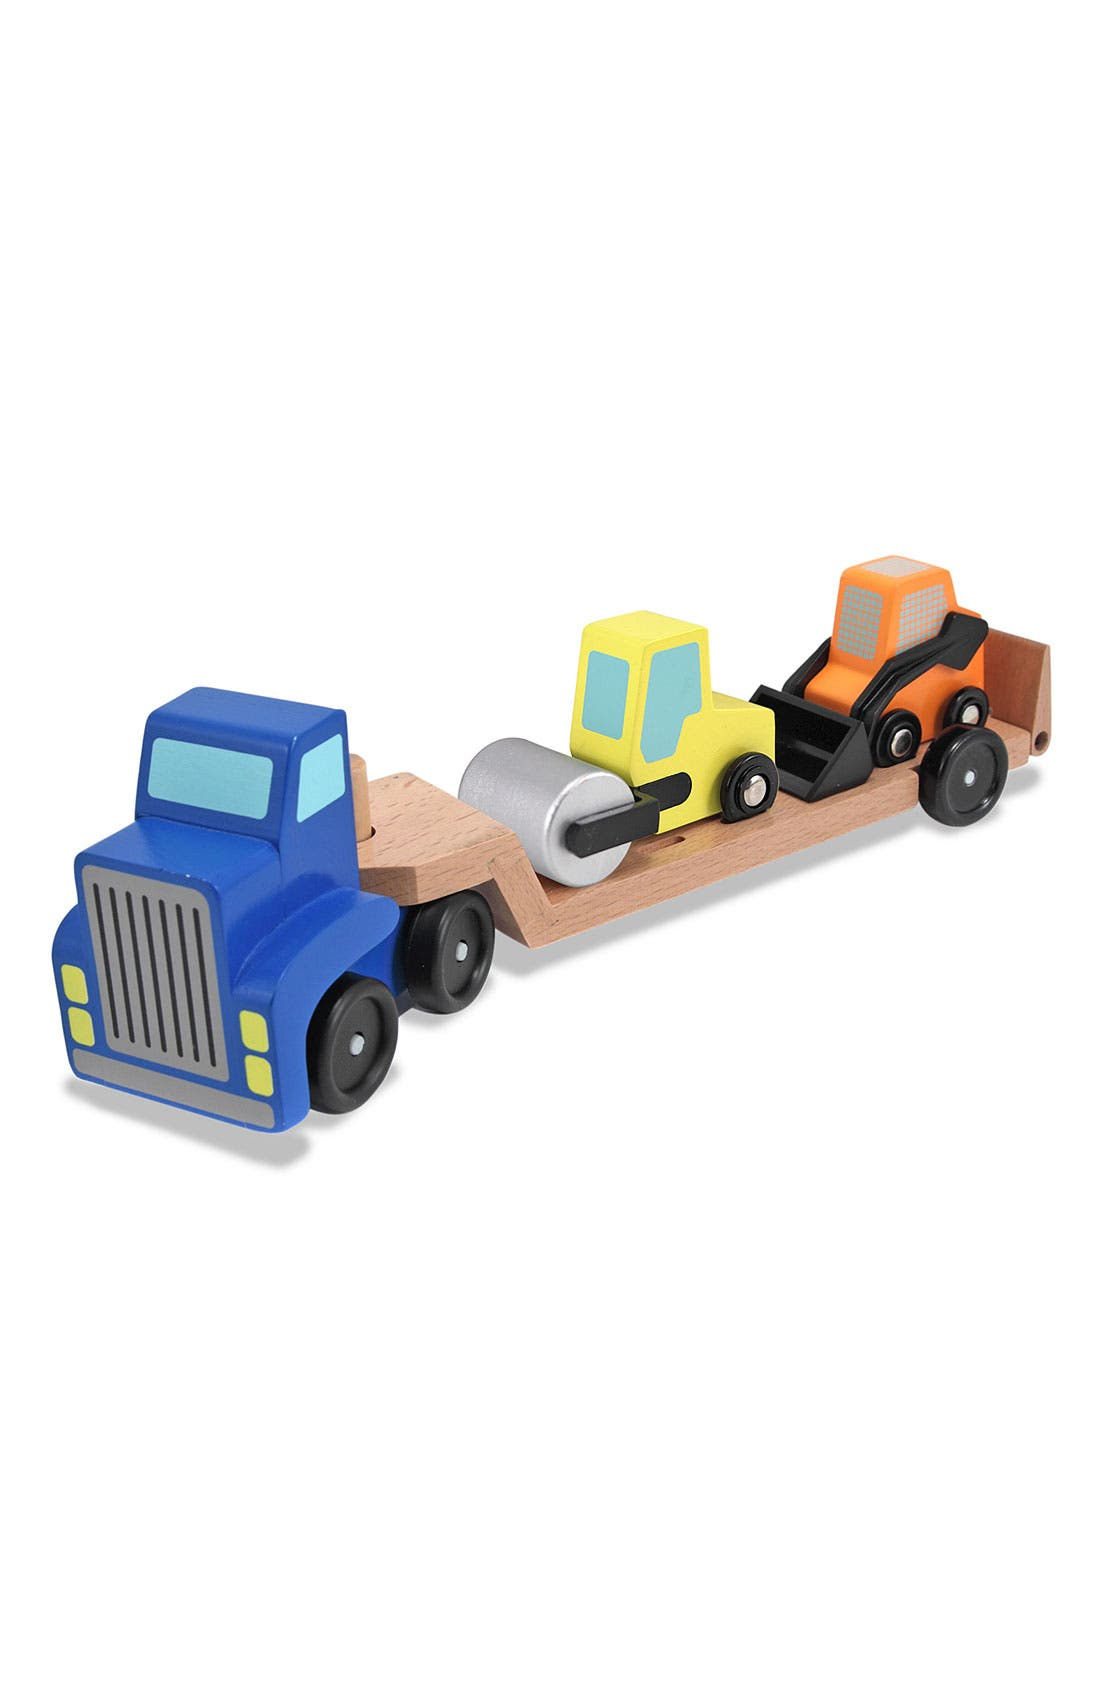 Alternate Image 1 Selected - Melissa & Doug Wooden Vehicle Carrier